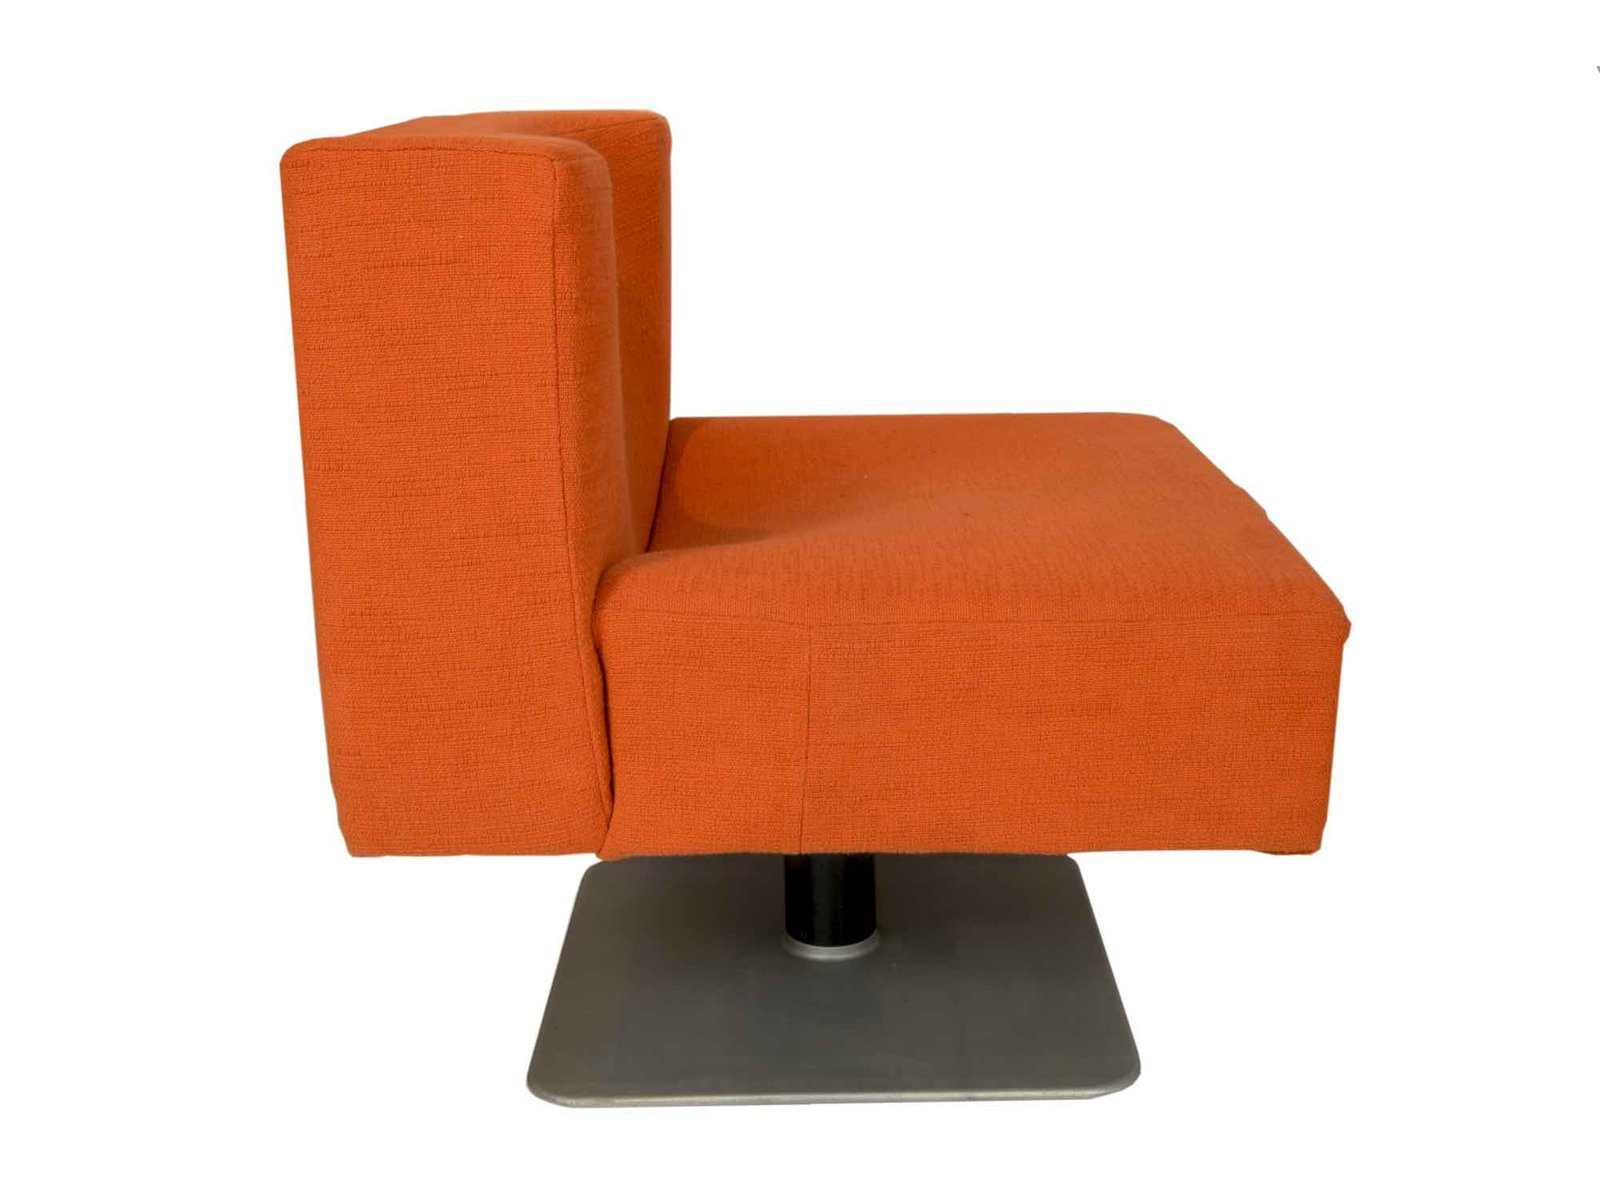 Modernist orange chairs by knoll 1960s set of 2 for sale at pamono - Knoll inc chairs ...